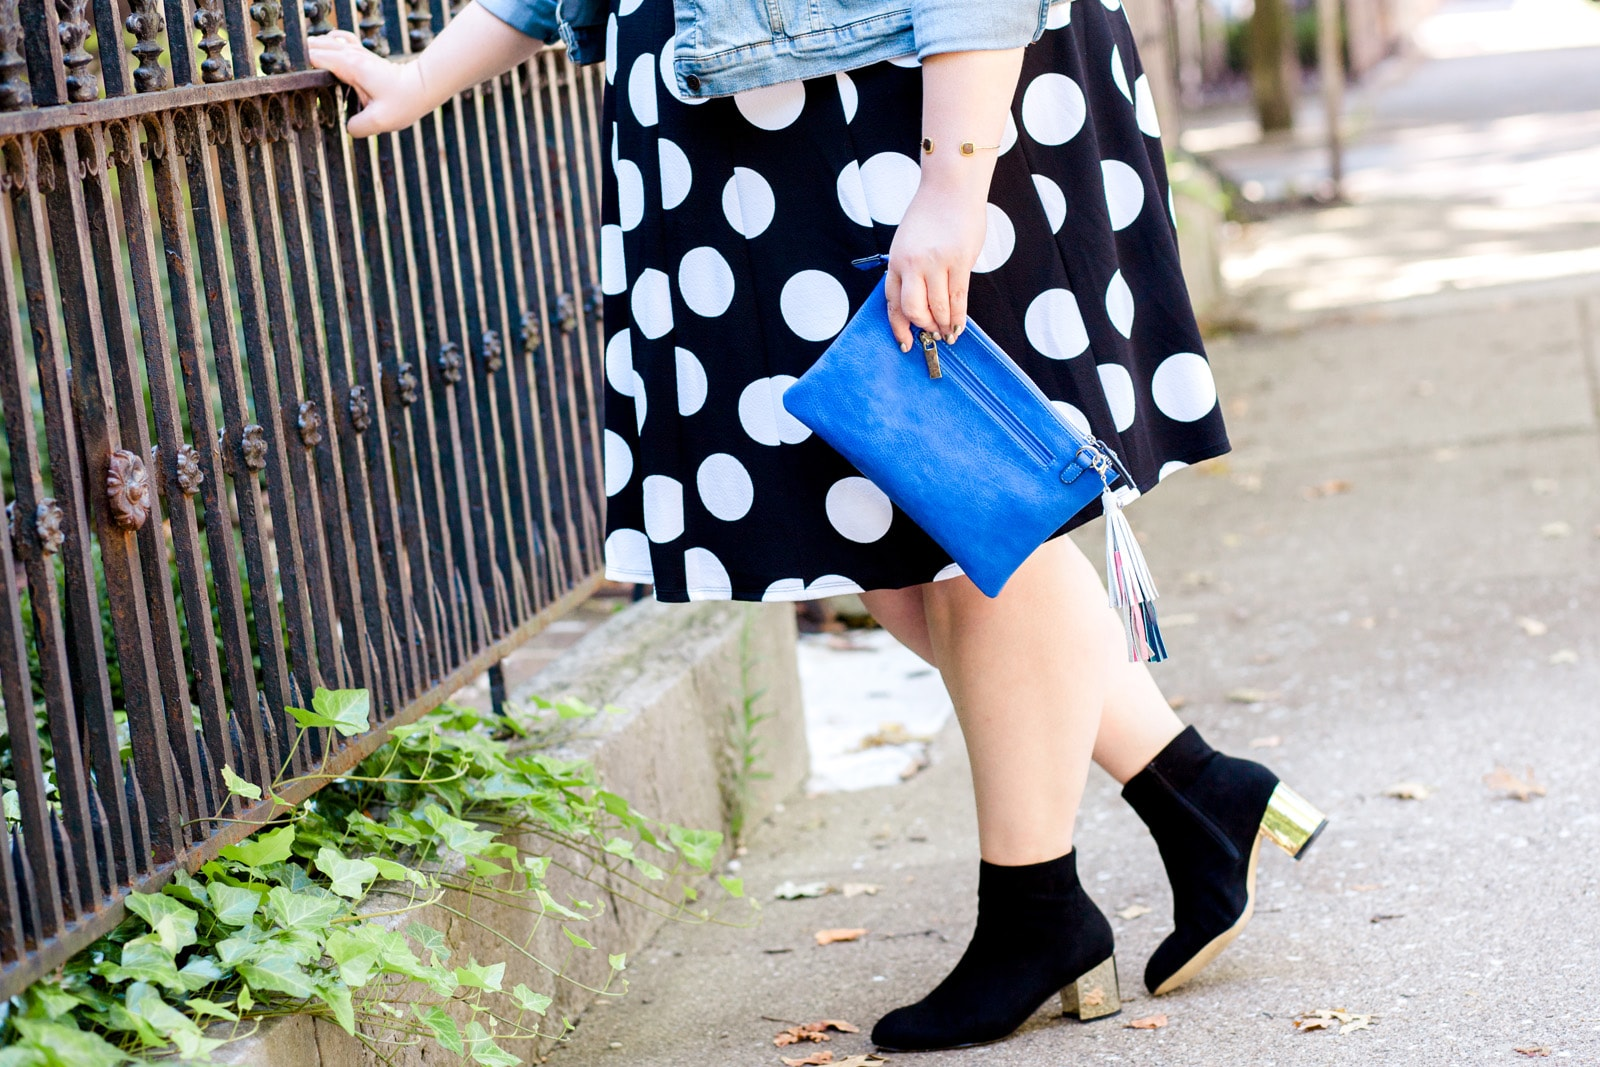 Authentically Emmie in a Gwynnie Bee dress, Eloquii boots, and Debshops clutch